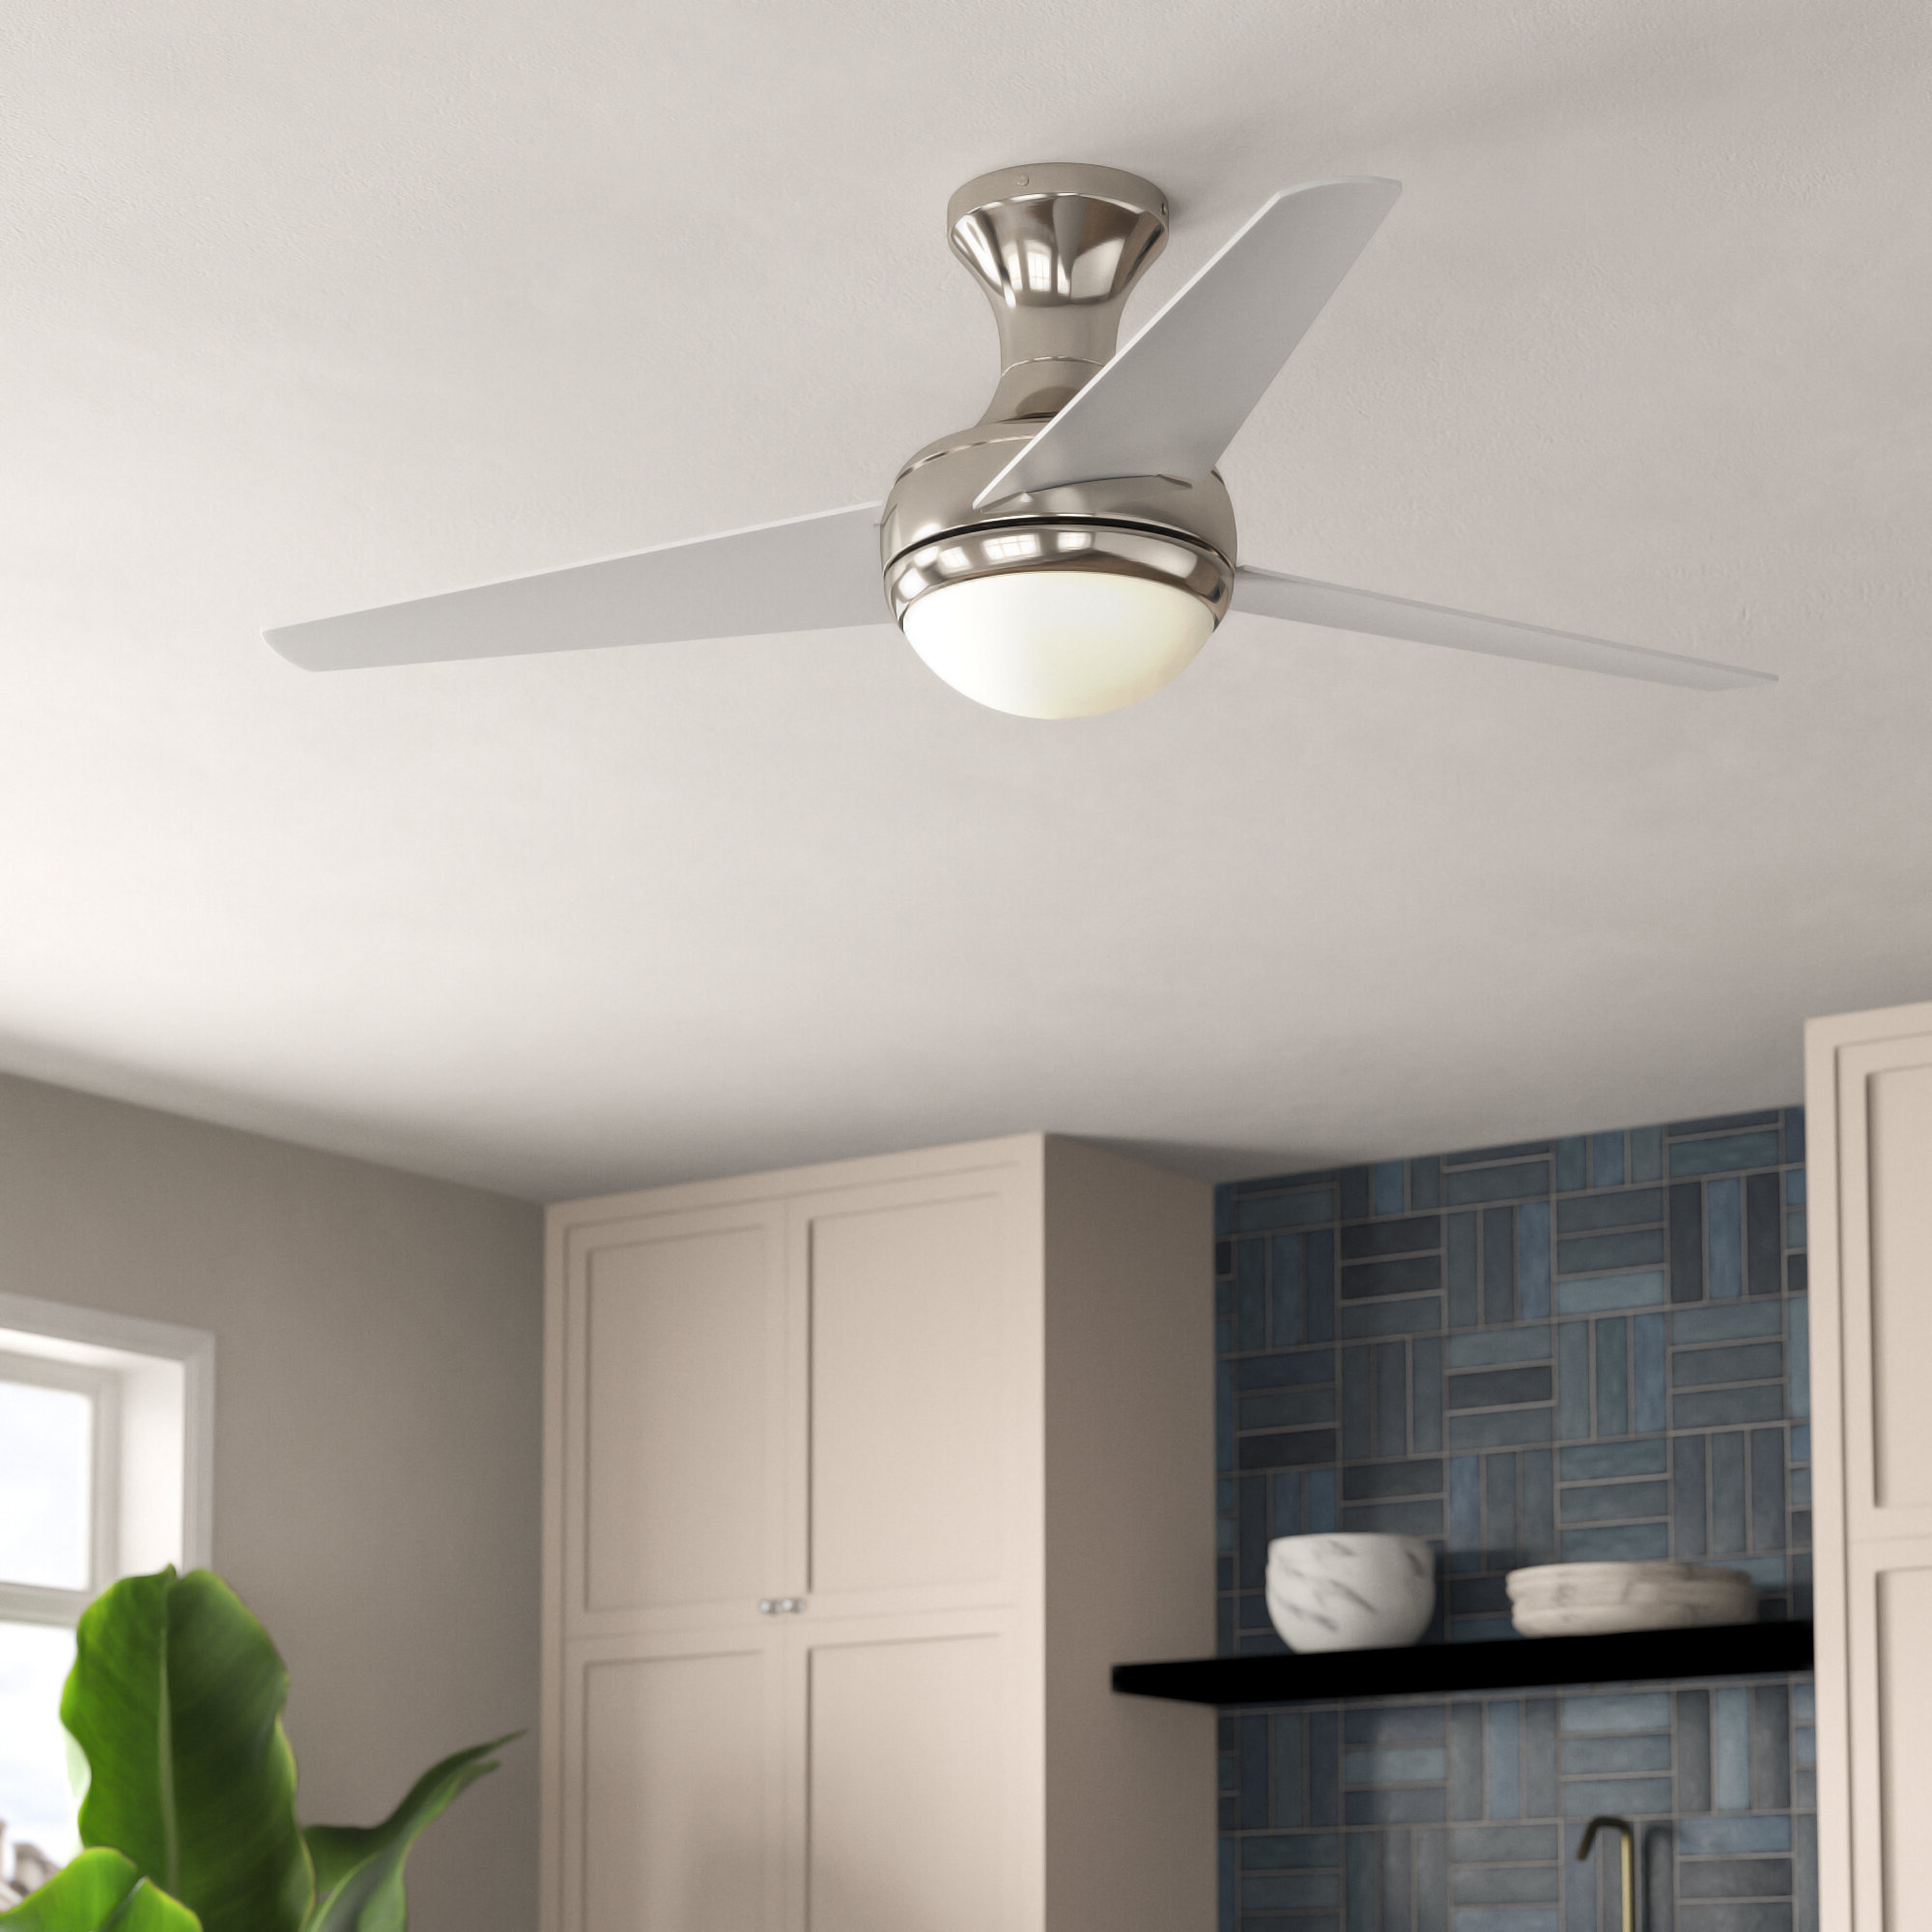 "2019 48"" Bernabe 3 Blade Ceiling Fan With Remote, Light Kit Included Within Bernabe 3 Blade Ceiling Fans (View 1 of 20)"